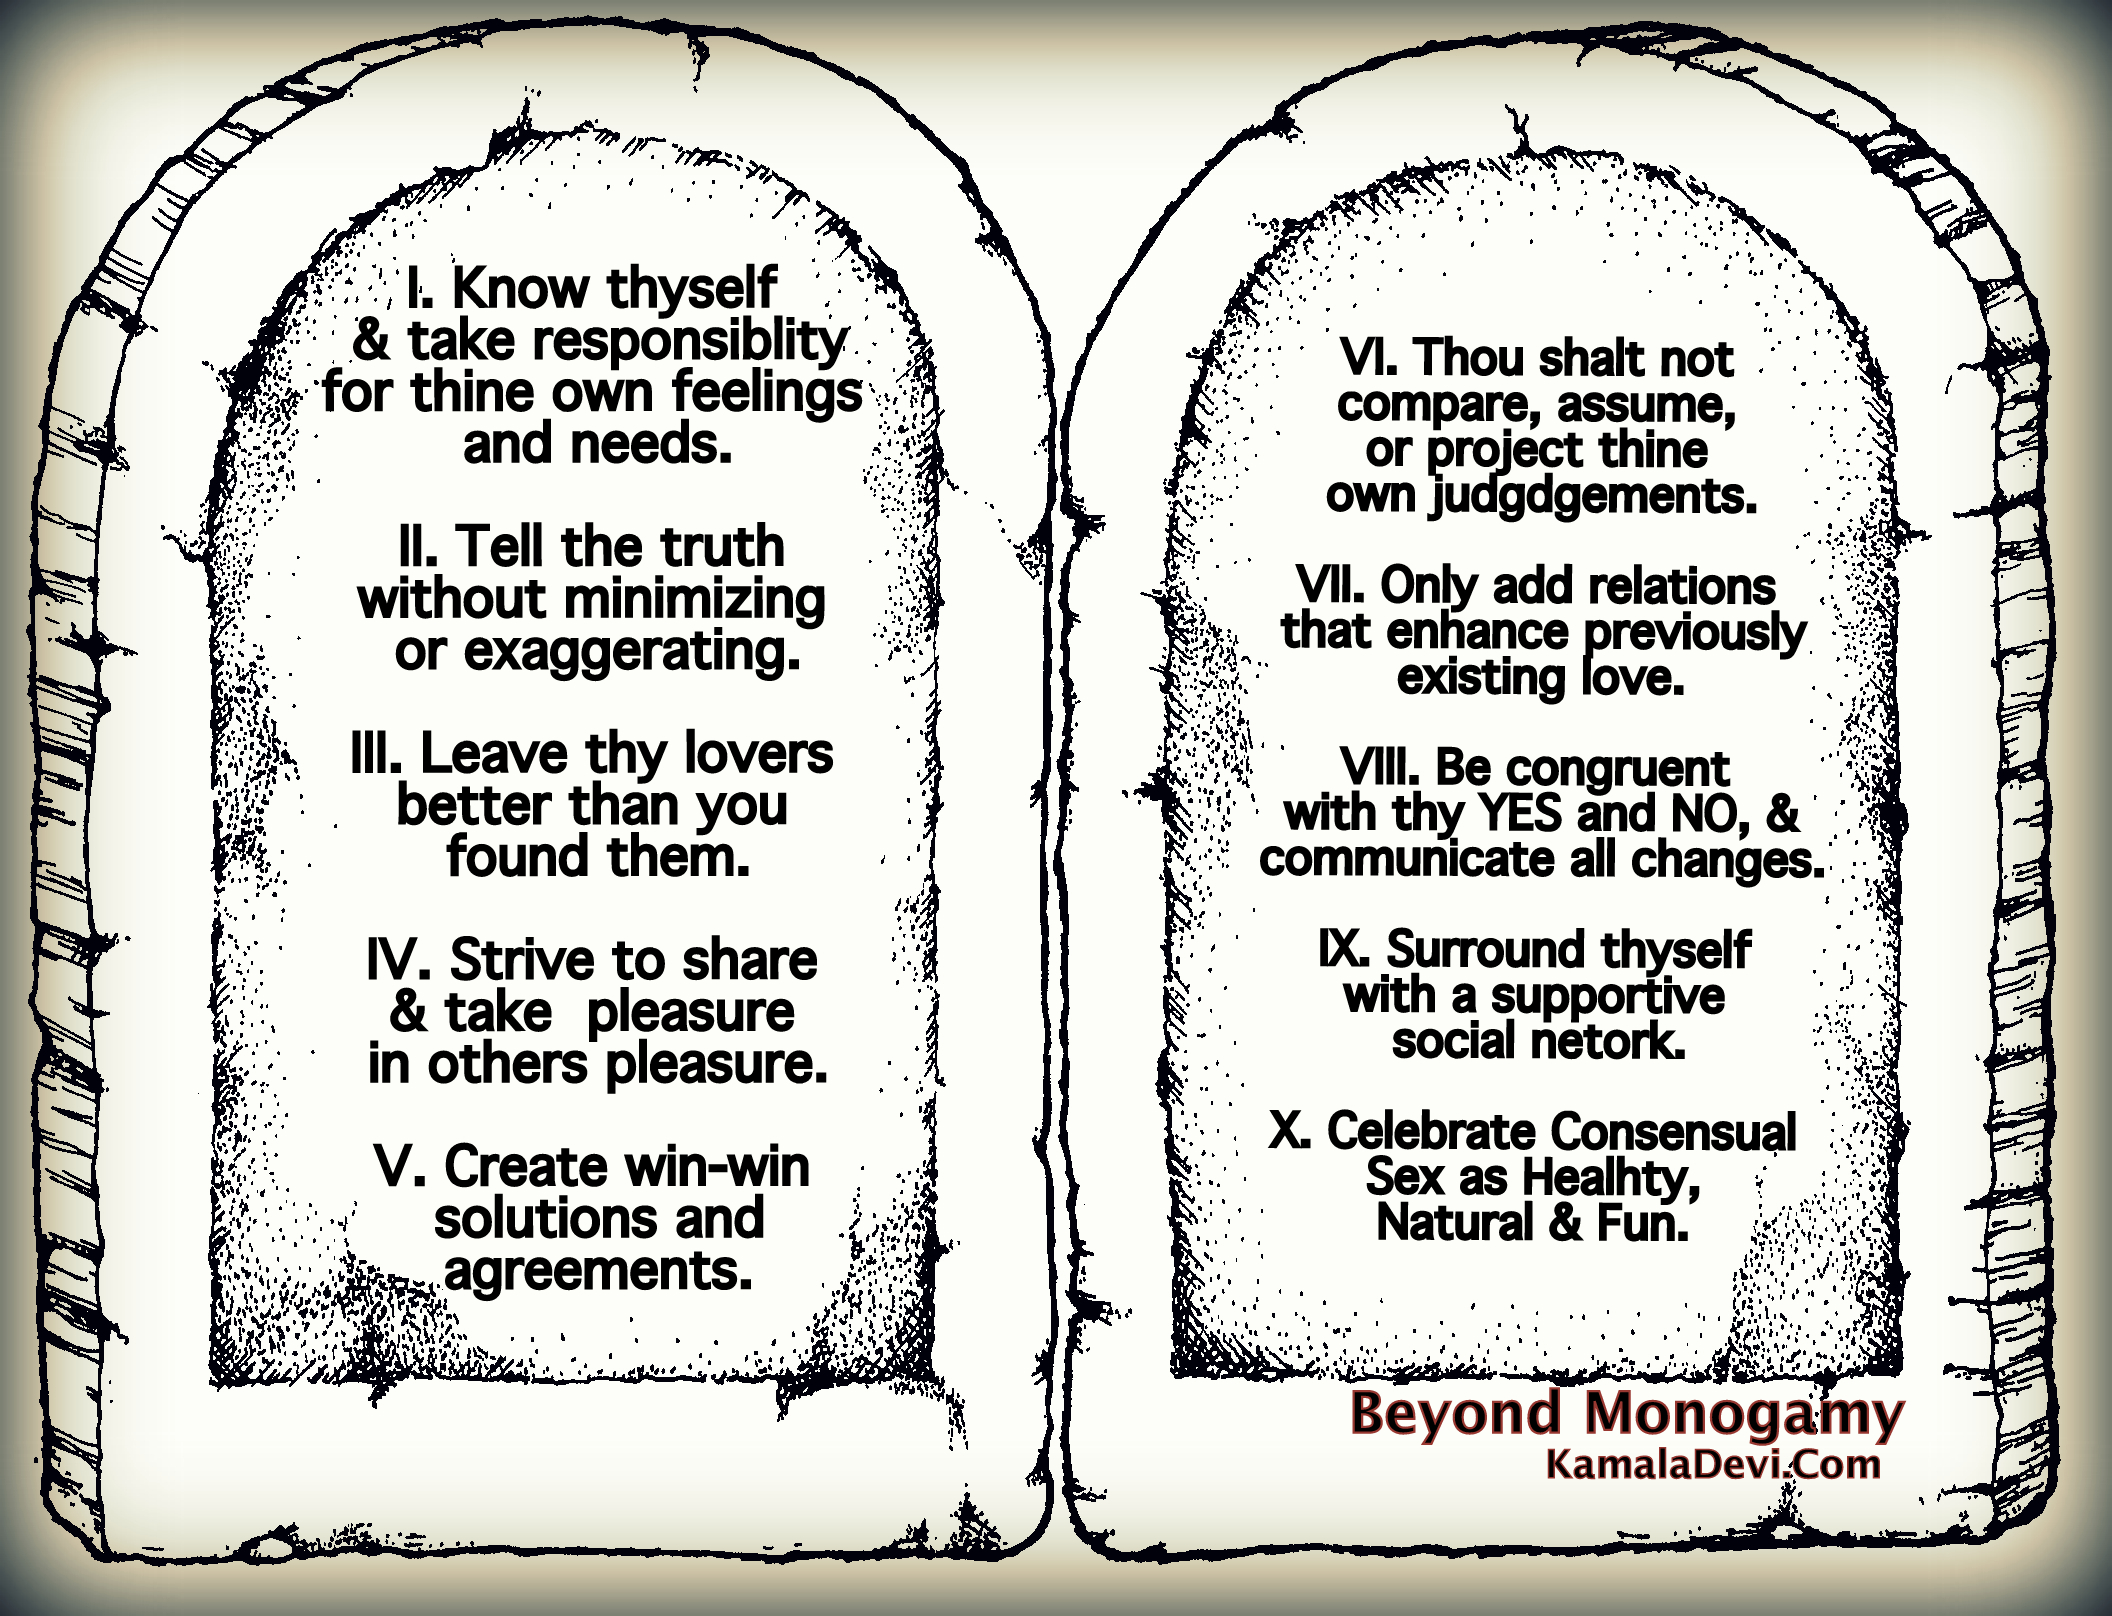 10 Polyamory Rules, Commandments, or Best Practices: Beyond Monogamy